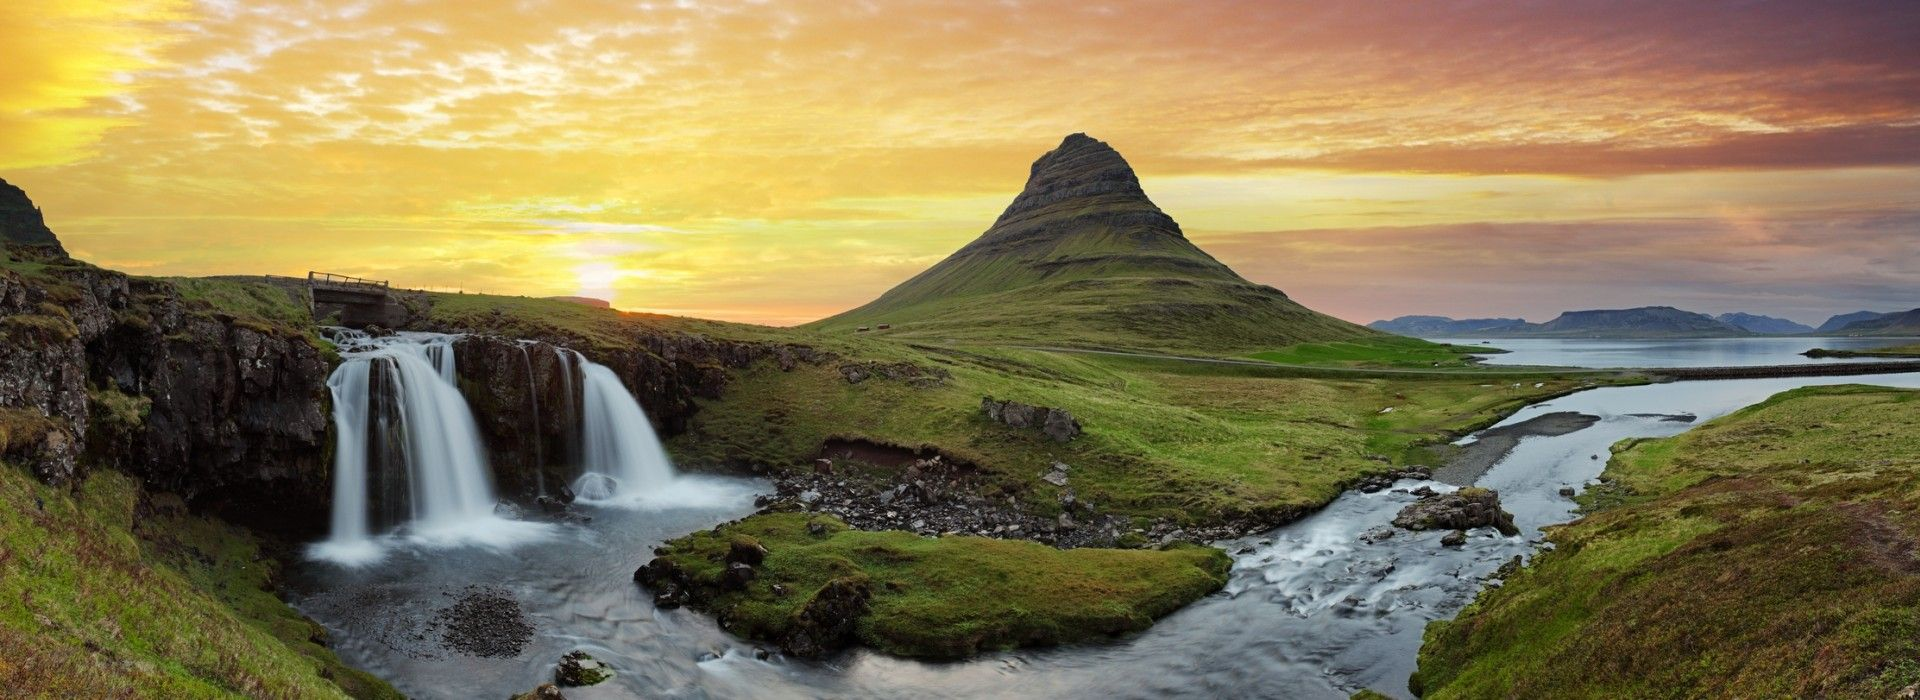 Beach, romance, getaways and relaxation Tours in Iceland